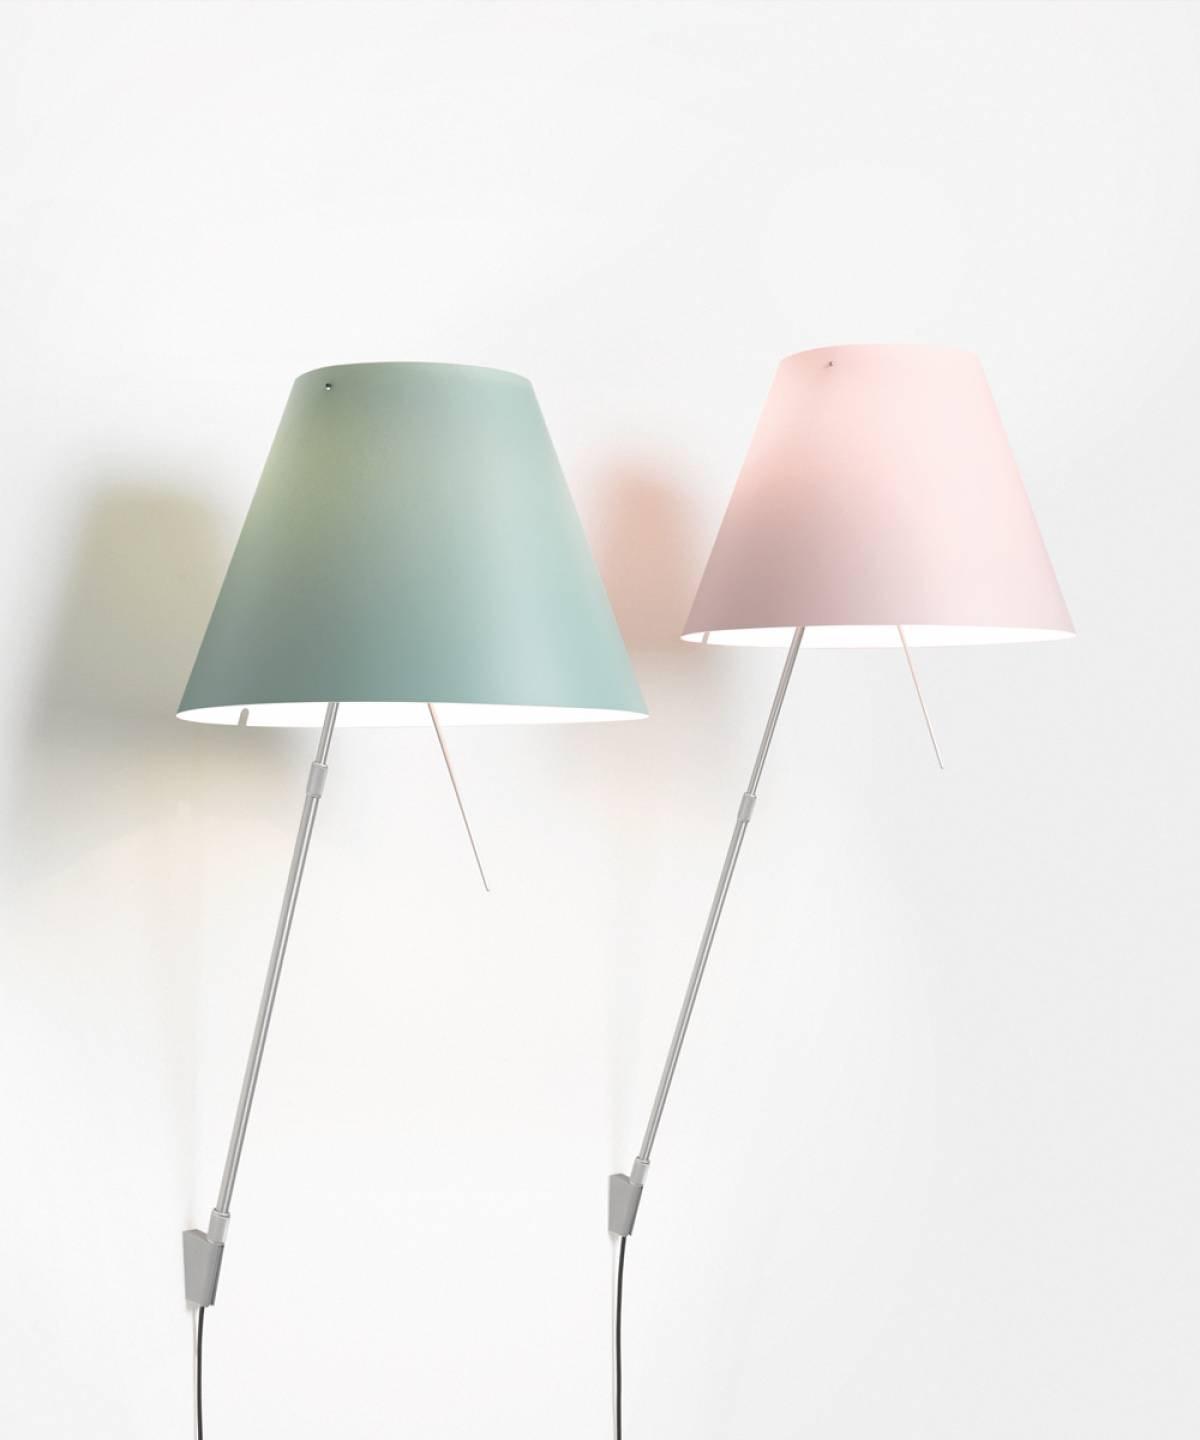 1 Costanza wall lamp